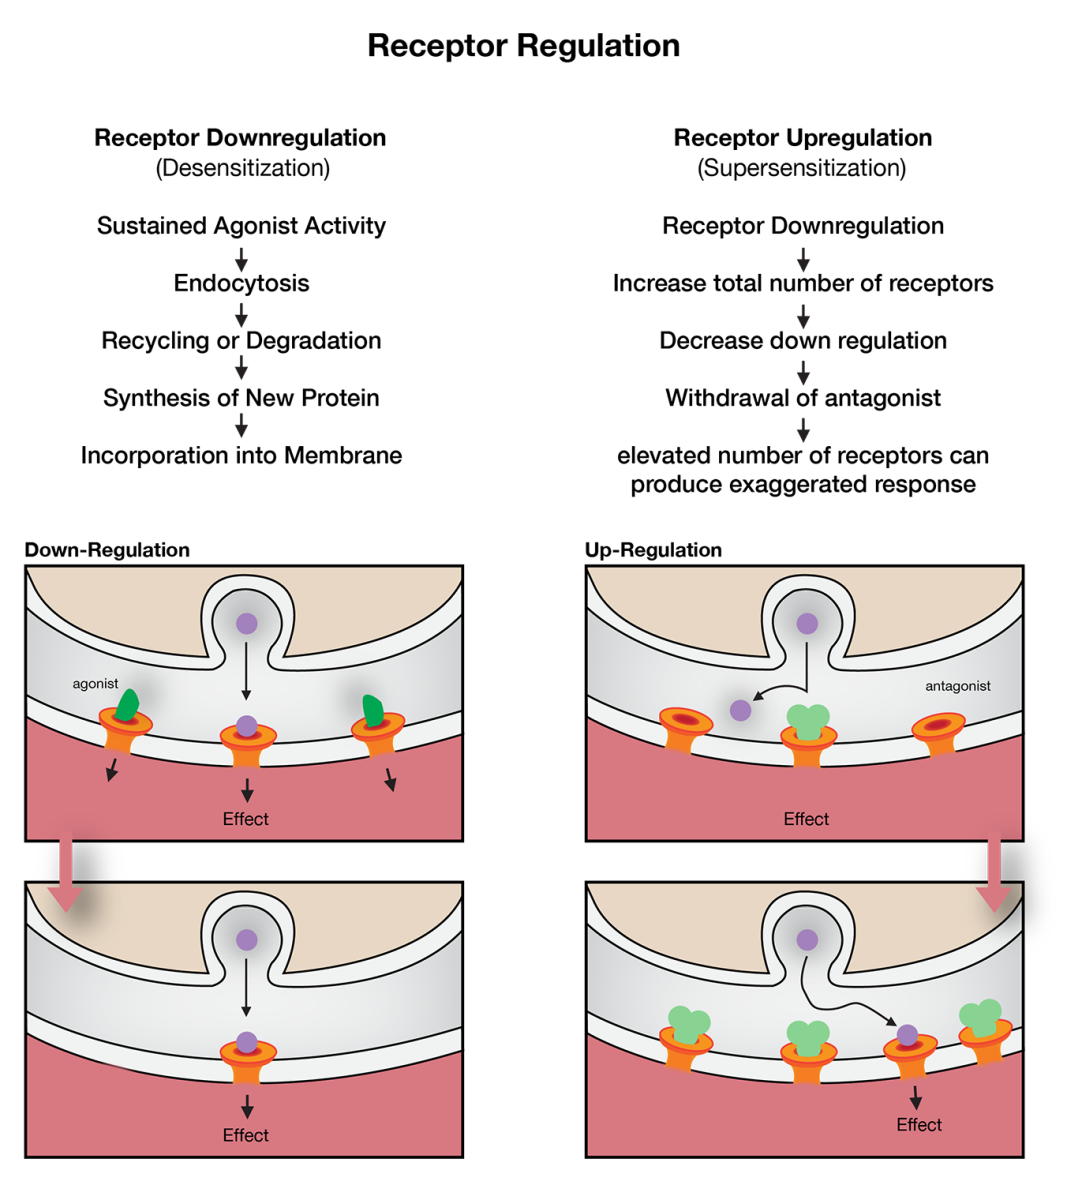 Receptor up and down regulation